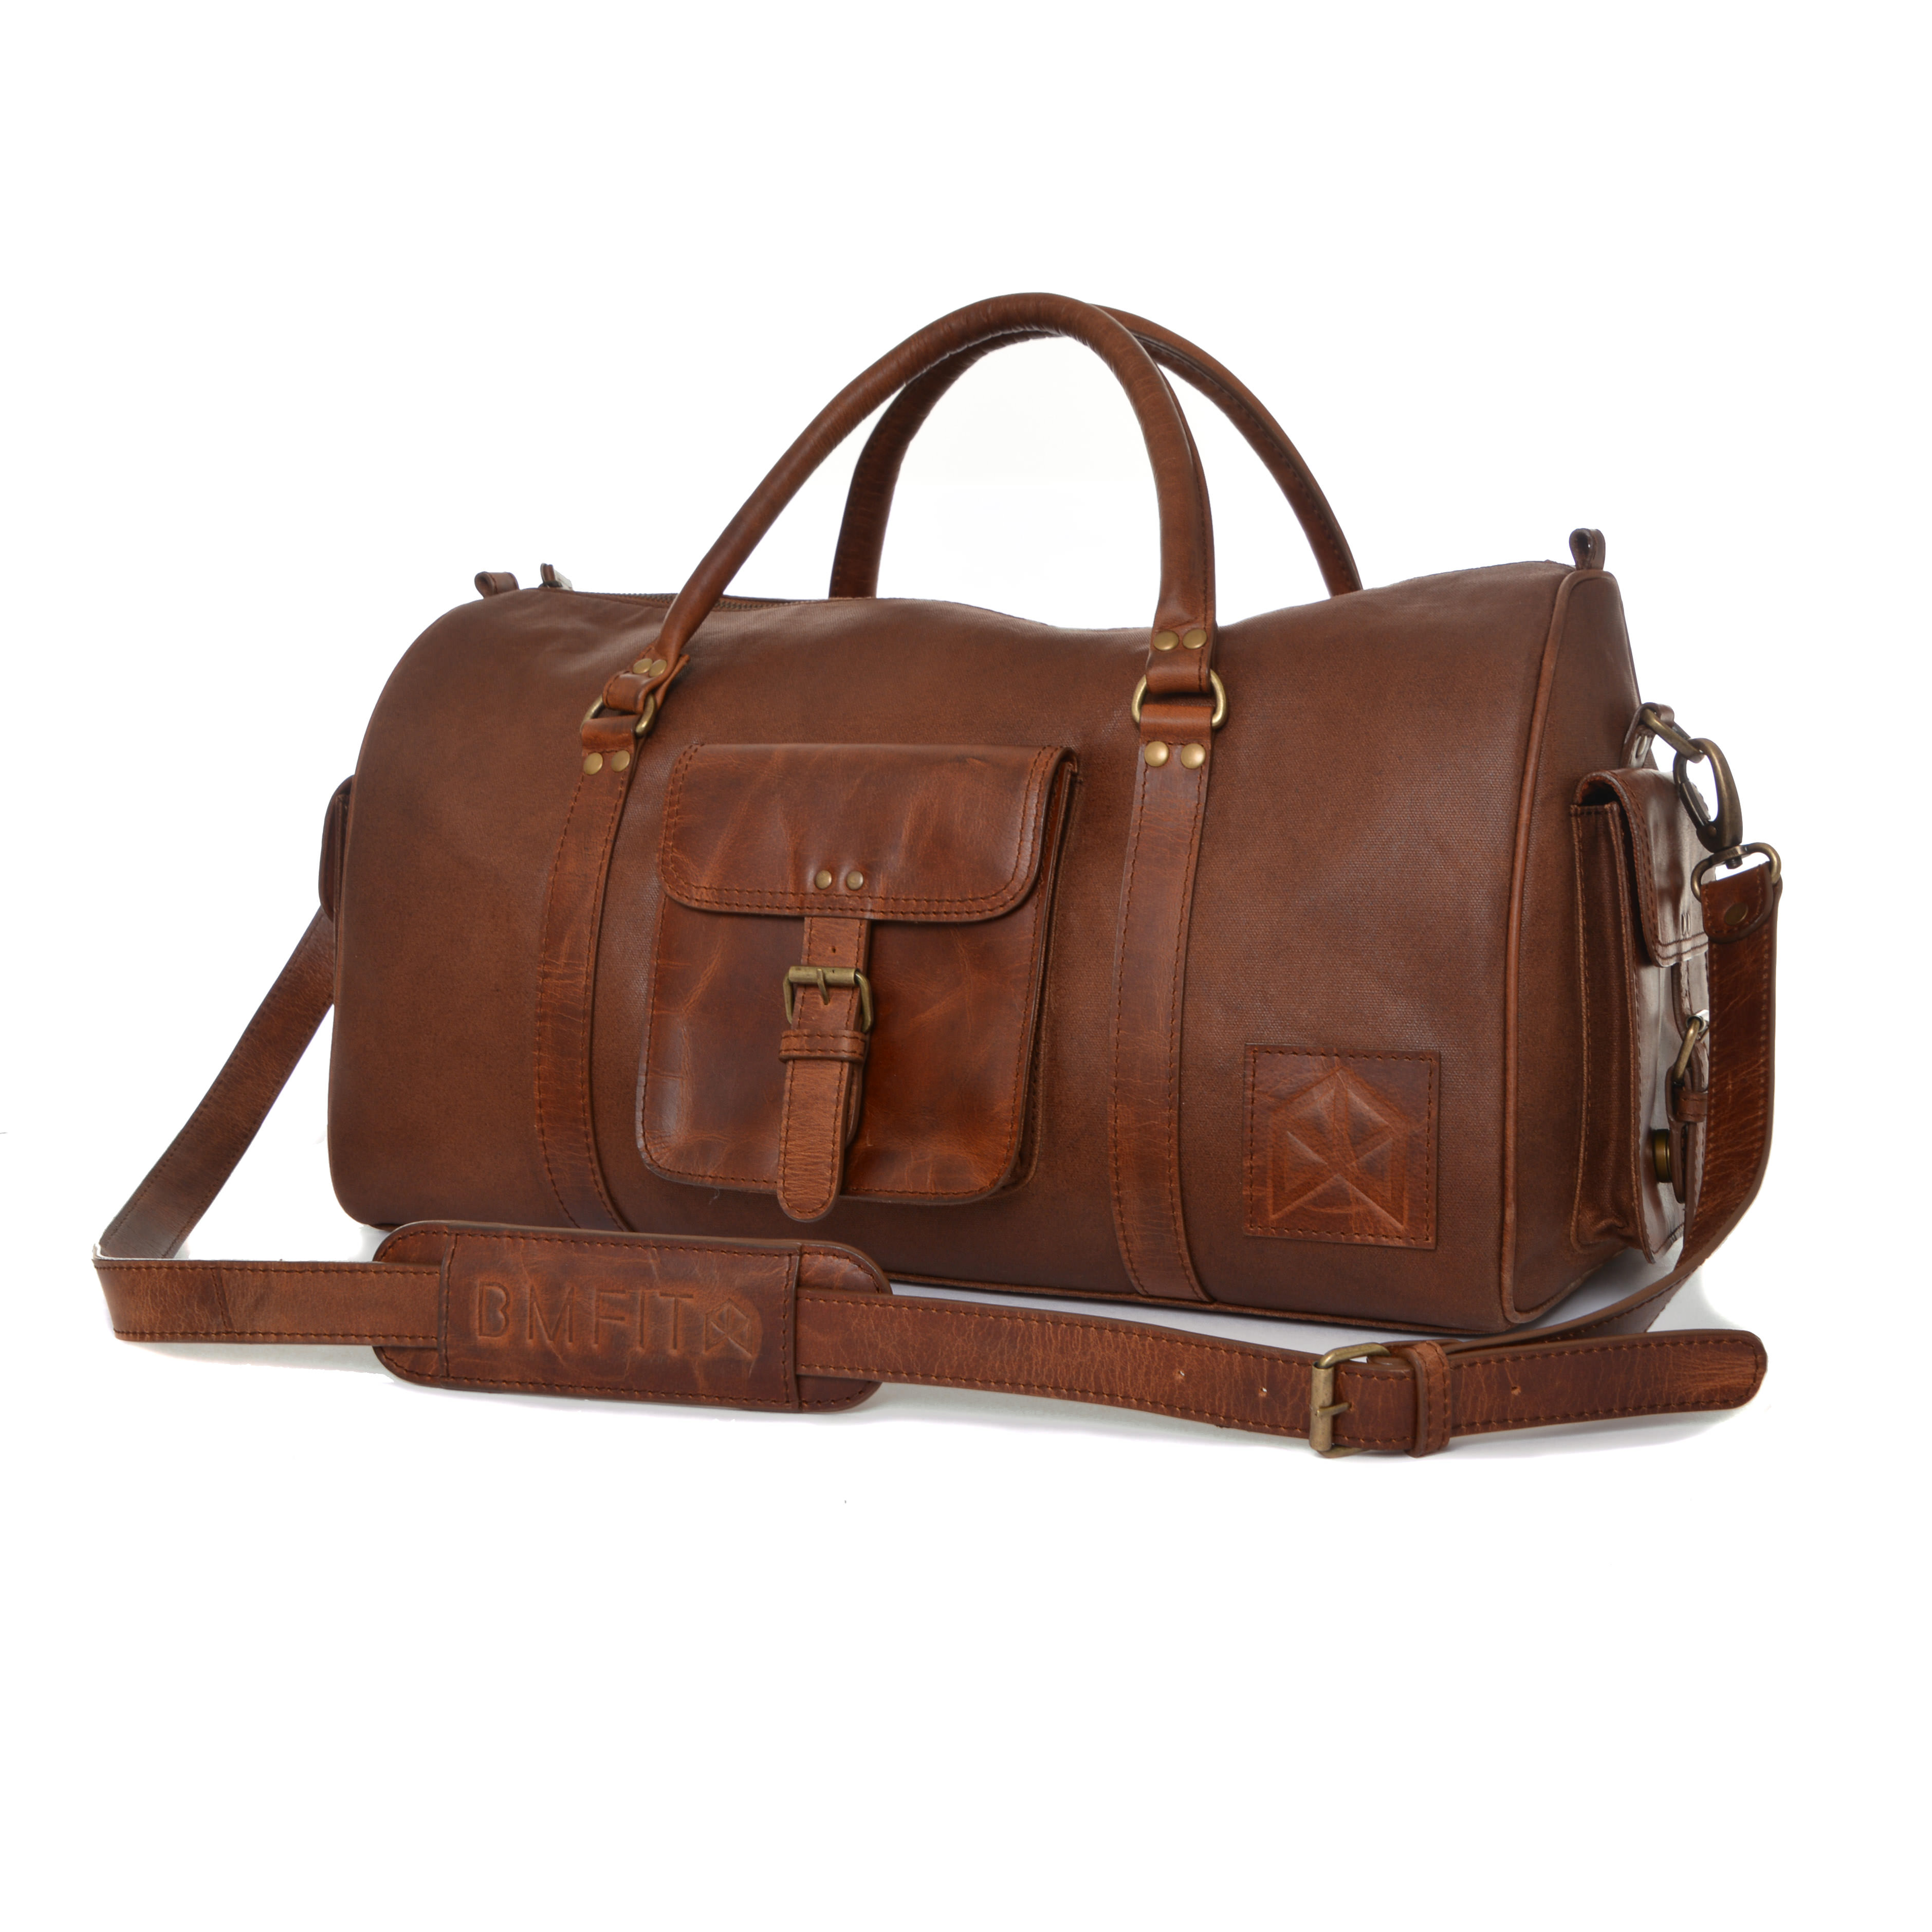 BMFIT Leather Wax Canvas Gym Duffle Bags - Brown